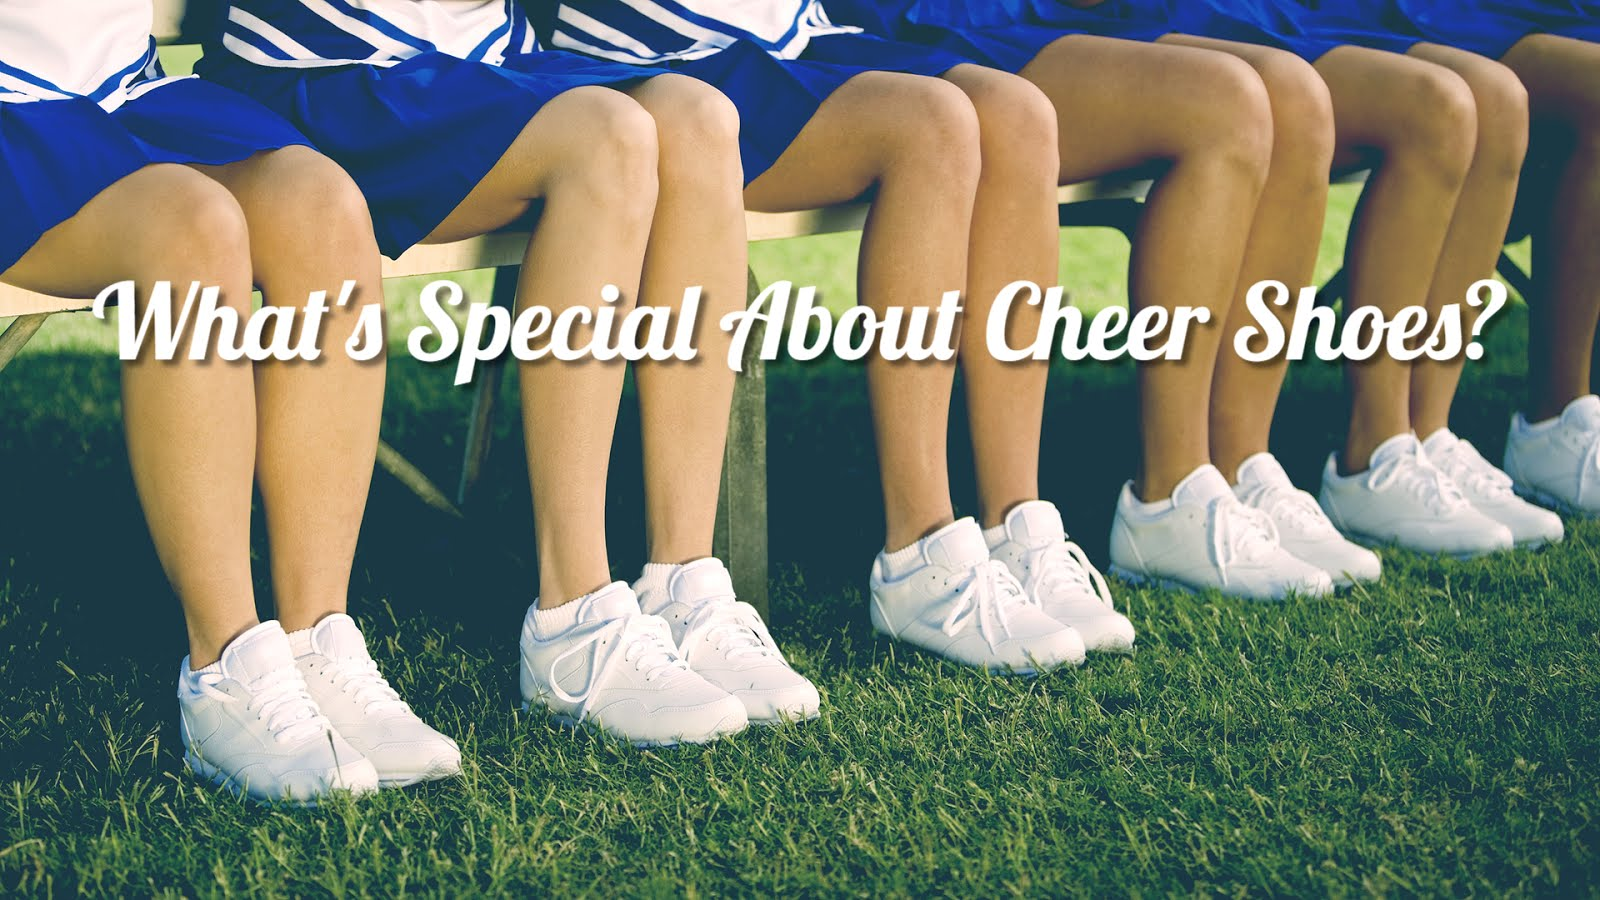 What's so special about cheer shoes?